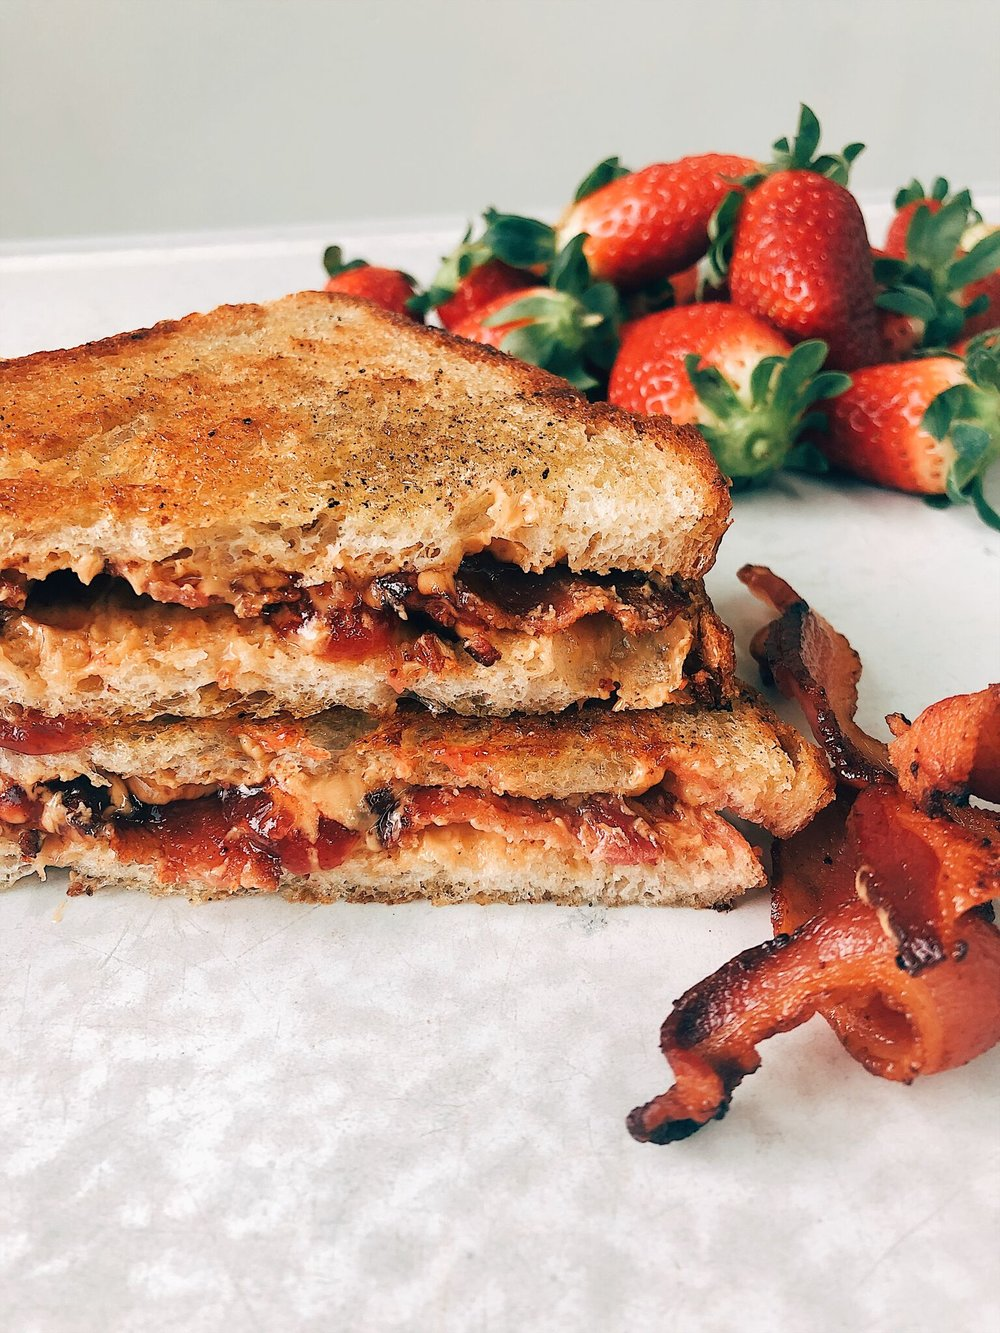 PB+J #3 - Our last PB+J idea comes from Chef Casey Rebecca Nunes of Media Noche in San Fransisco.First mix some sambal (buy it here) with creamy peanut butter. Then fry up some bacon and layer your bread with spicy peanut butter, Strawberry Bourbon jam, and bacon. Add a tablespoon of butter to the skillet and fry sandwich on both sides.